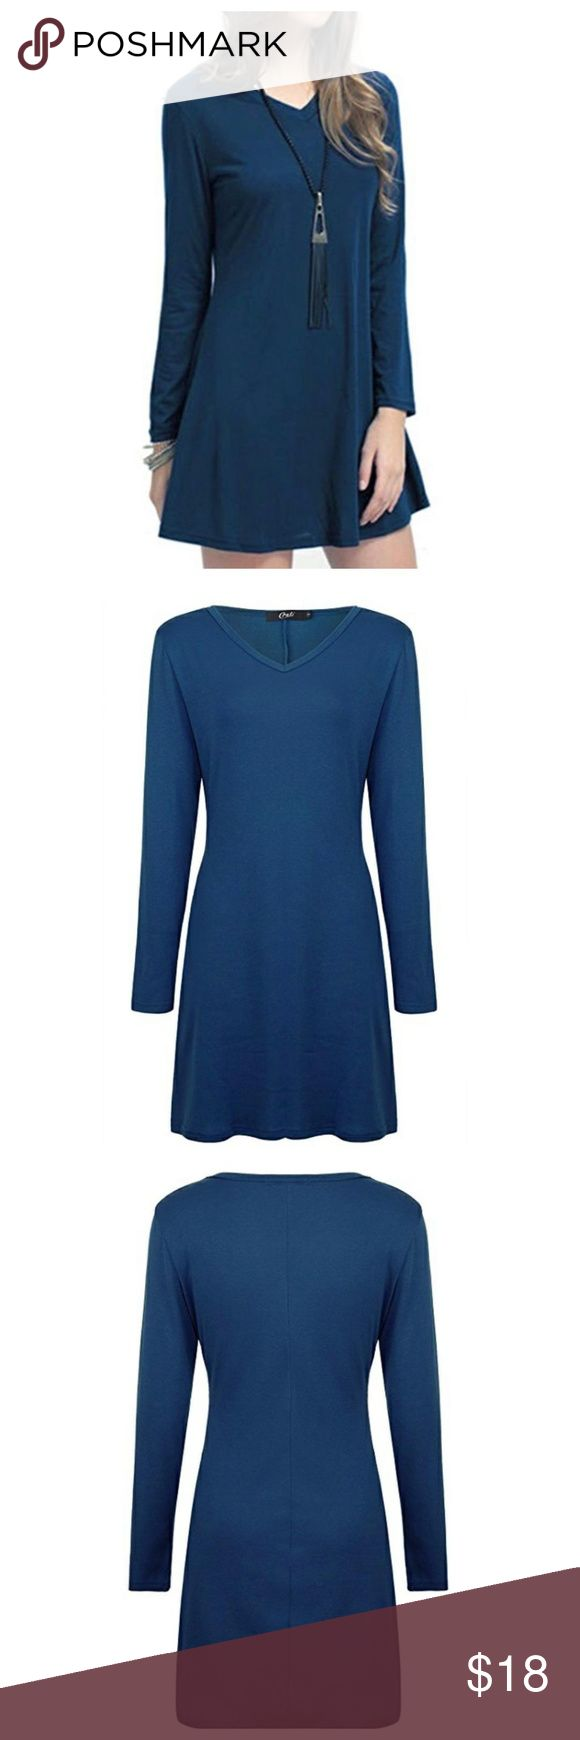 """NEW Navy V Neck Long Sleeve Tunic Dress Sz. L New with tags.  Navy Blue Semi-loose fit, long sleeve, V neck, tunic dress. This tunic dress is made with heavy weight, knit that is very soft, drapes well and has great stretch. Comfortable tunic style fit. Pair with boots and a denim jacket for a causal look or dress this beauty up with heels and a sassy cardigan! Perfect for the season!  Material: 65% Cotton. 35% Spandex  Shoulder to hem: 34""""   Armpit to Armpit: 19"""" Dresses Long Sleeve"""